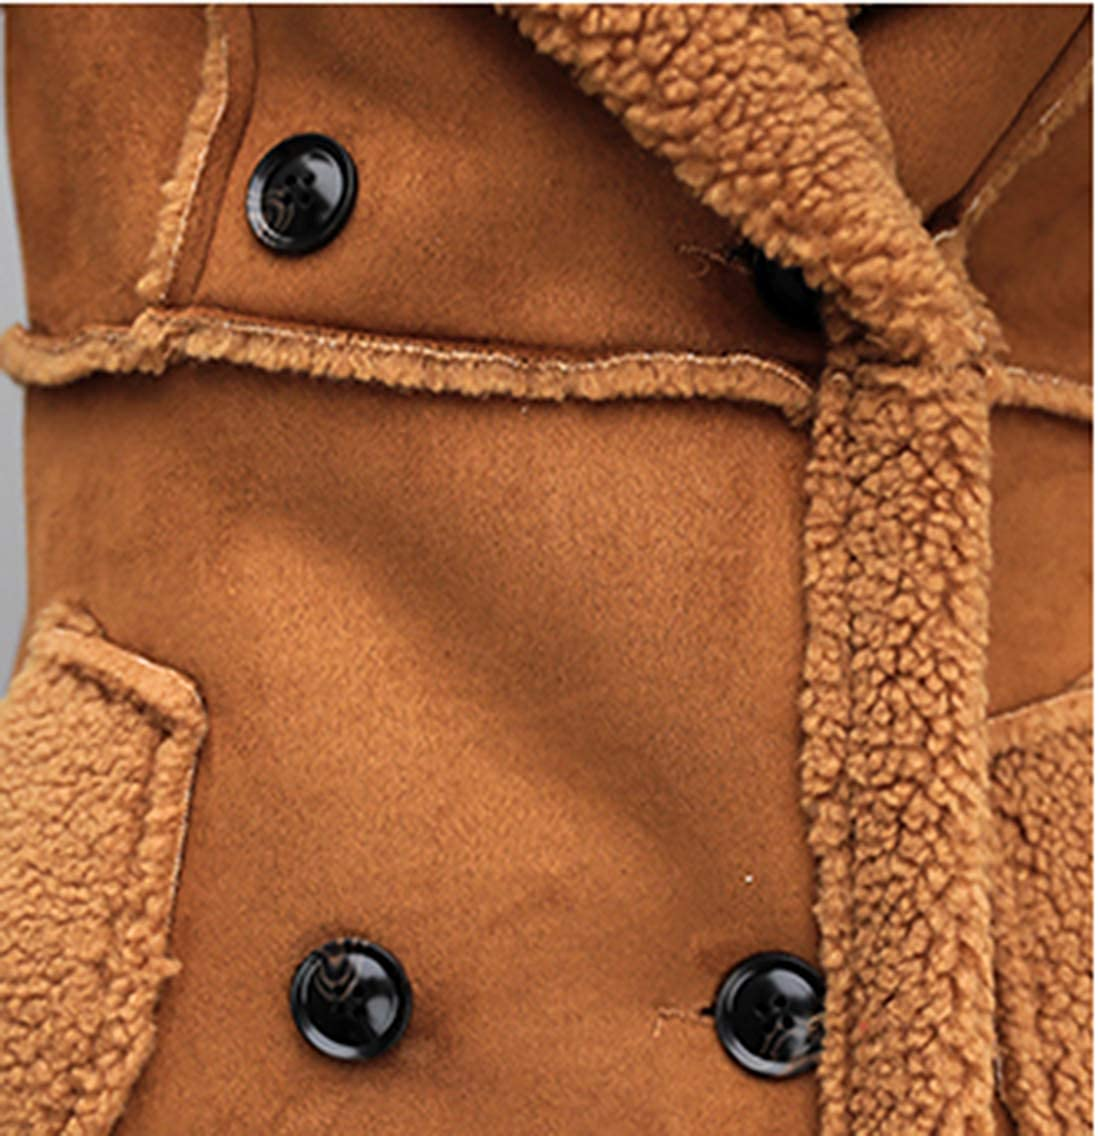 899d59dbf920 Lentta Women s Thick Double Breasted Long Suede Shearling Sherpa Lined  Winter Coat at Amazon Women s Coats Shop